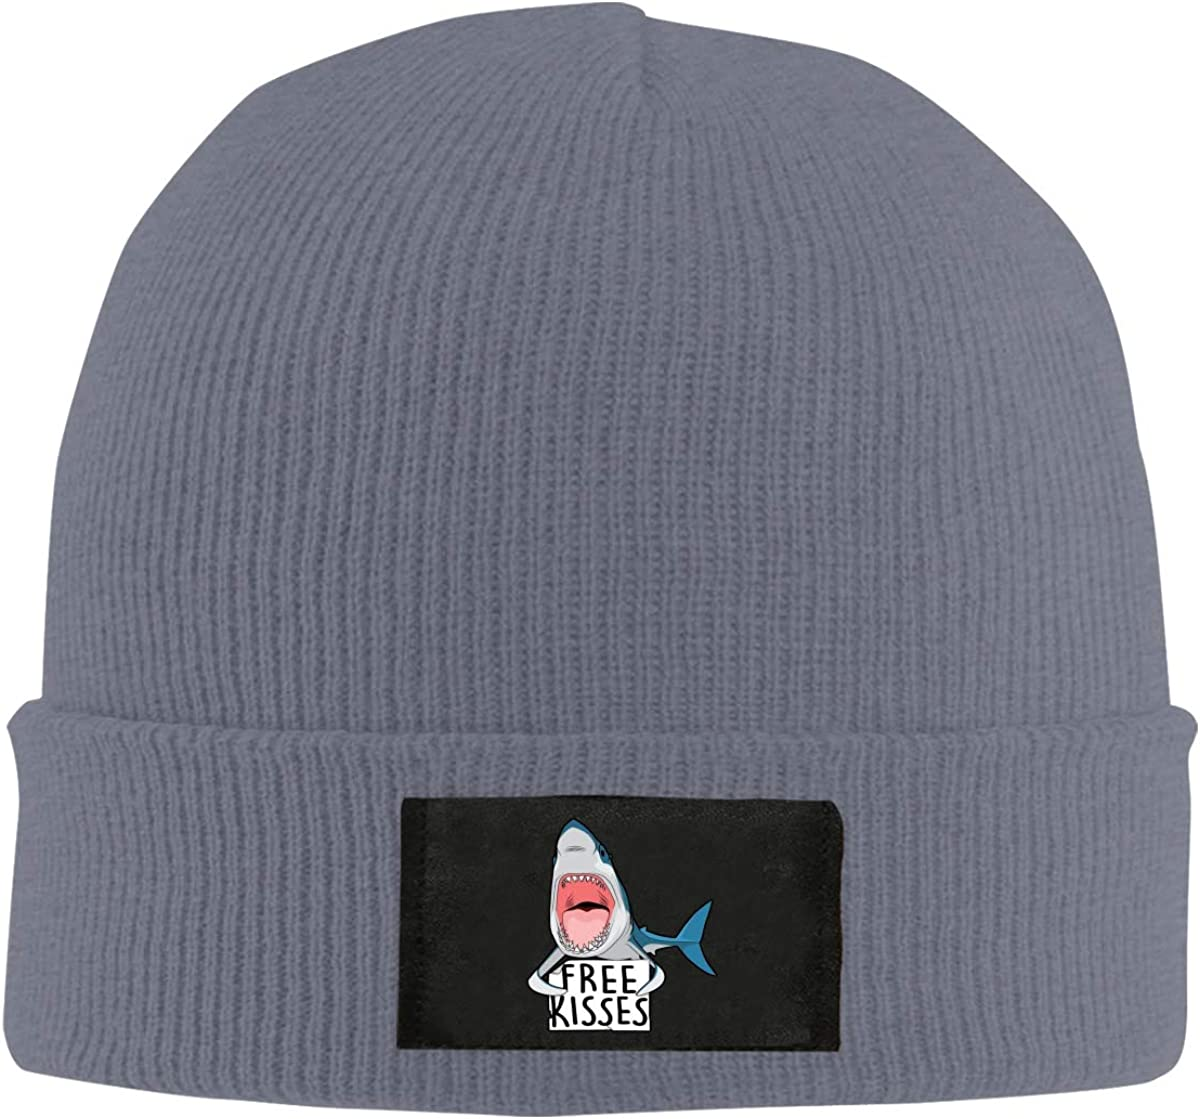 Free Kiss Shark Unisex Beanie Hat Fashion Warm Hats Skull Cap